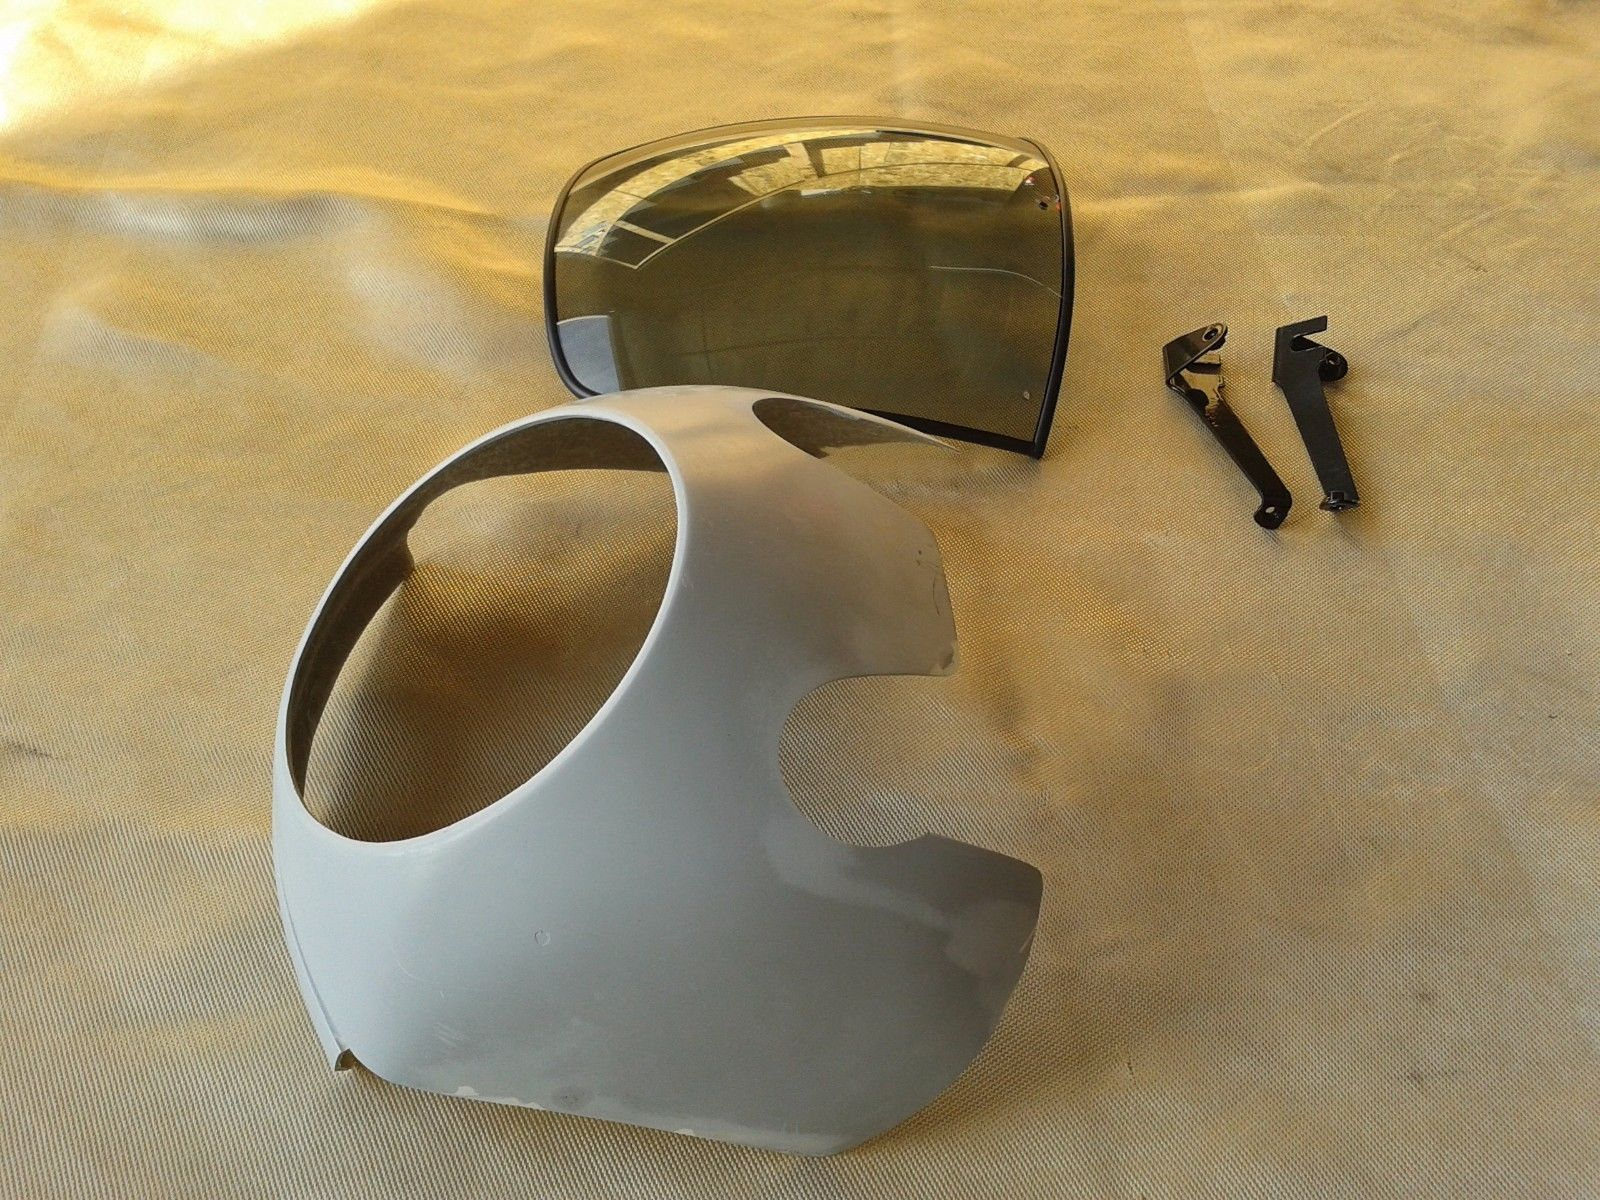 Us 299 00 New In Ebay Motors Parts Accessories Motorcycle Parts